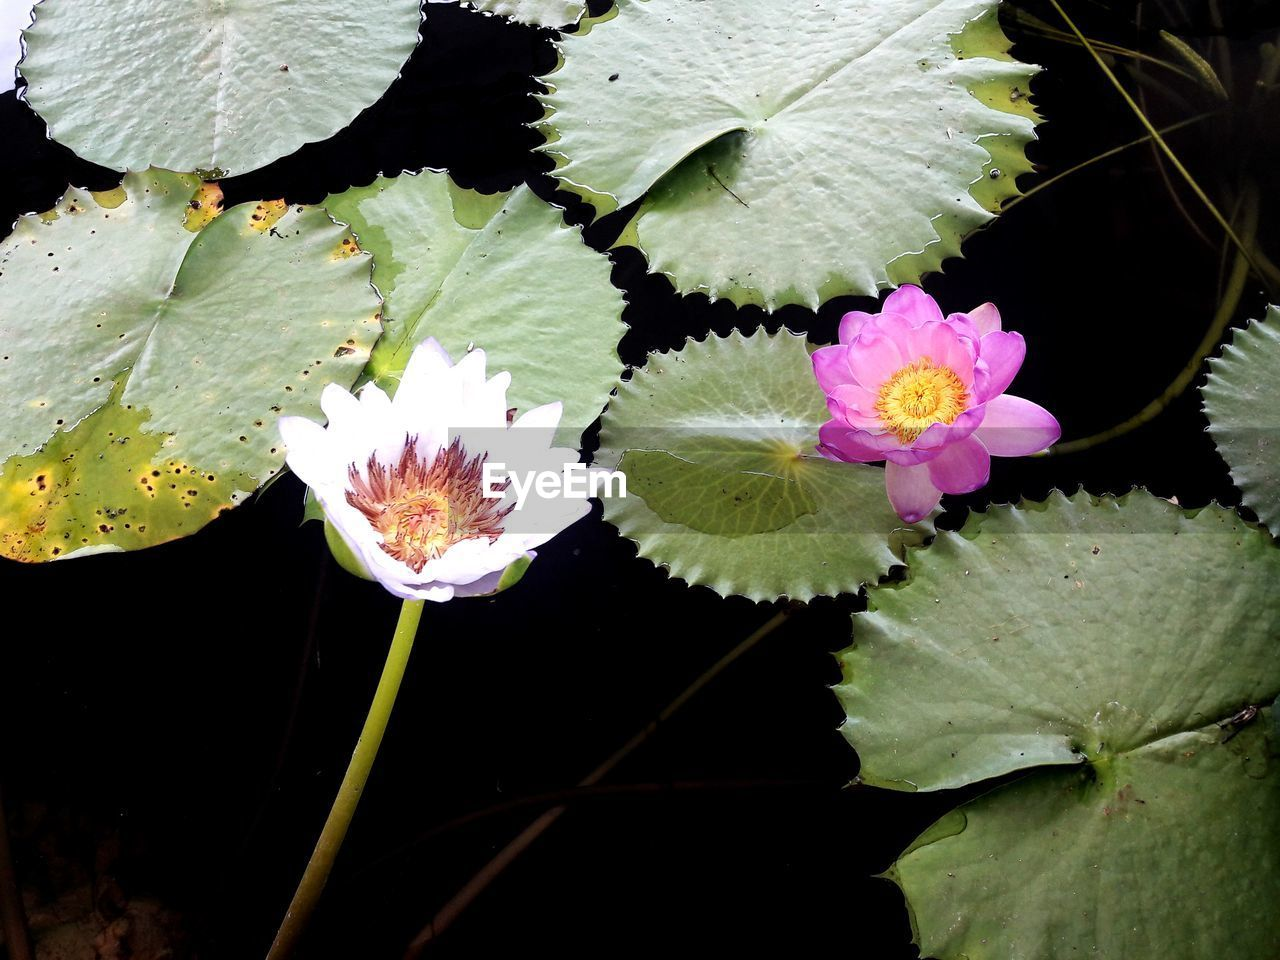 flower, beauty in nature, leaf, freshness, fragility, growth, nature, petal, flower head, plant, water lily, floating on water, no people, lotus water lily, close-up, outdoors, lily pad, high angle view, day, water, blooming